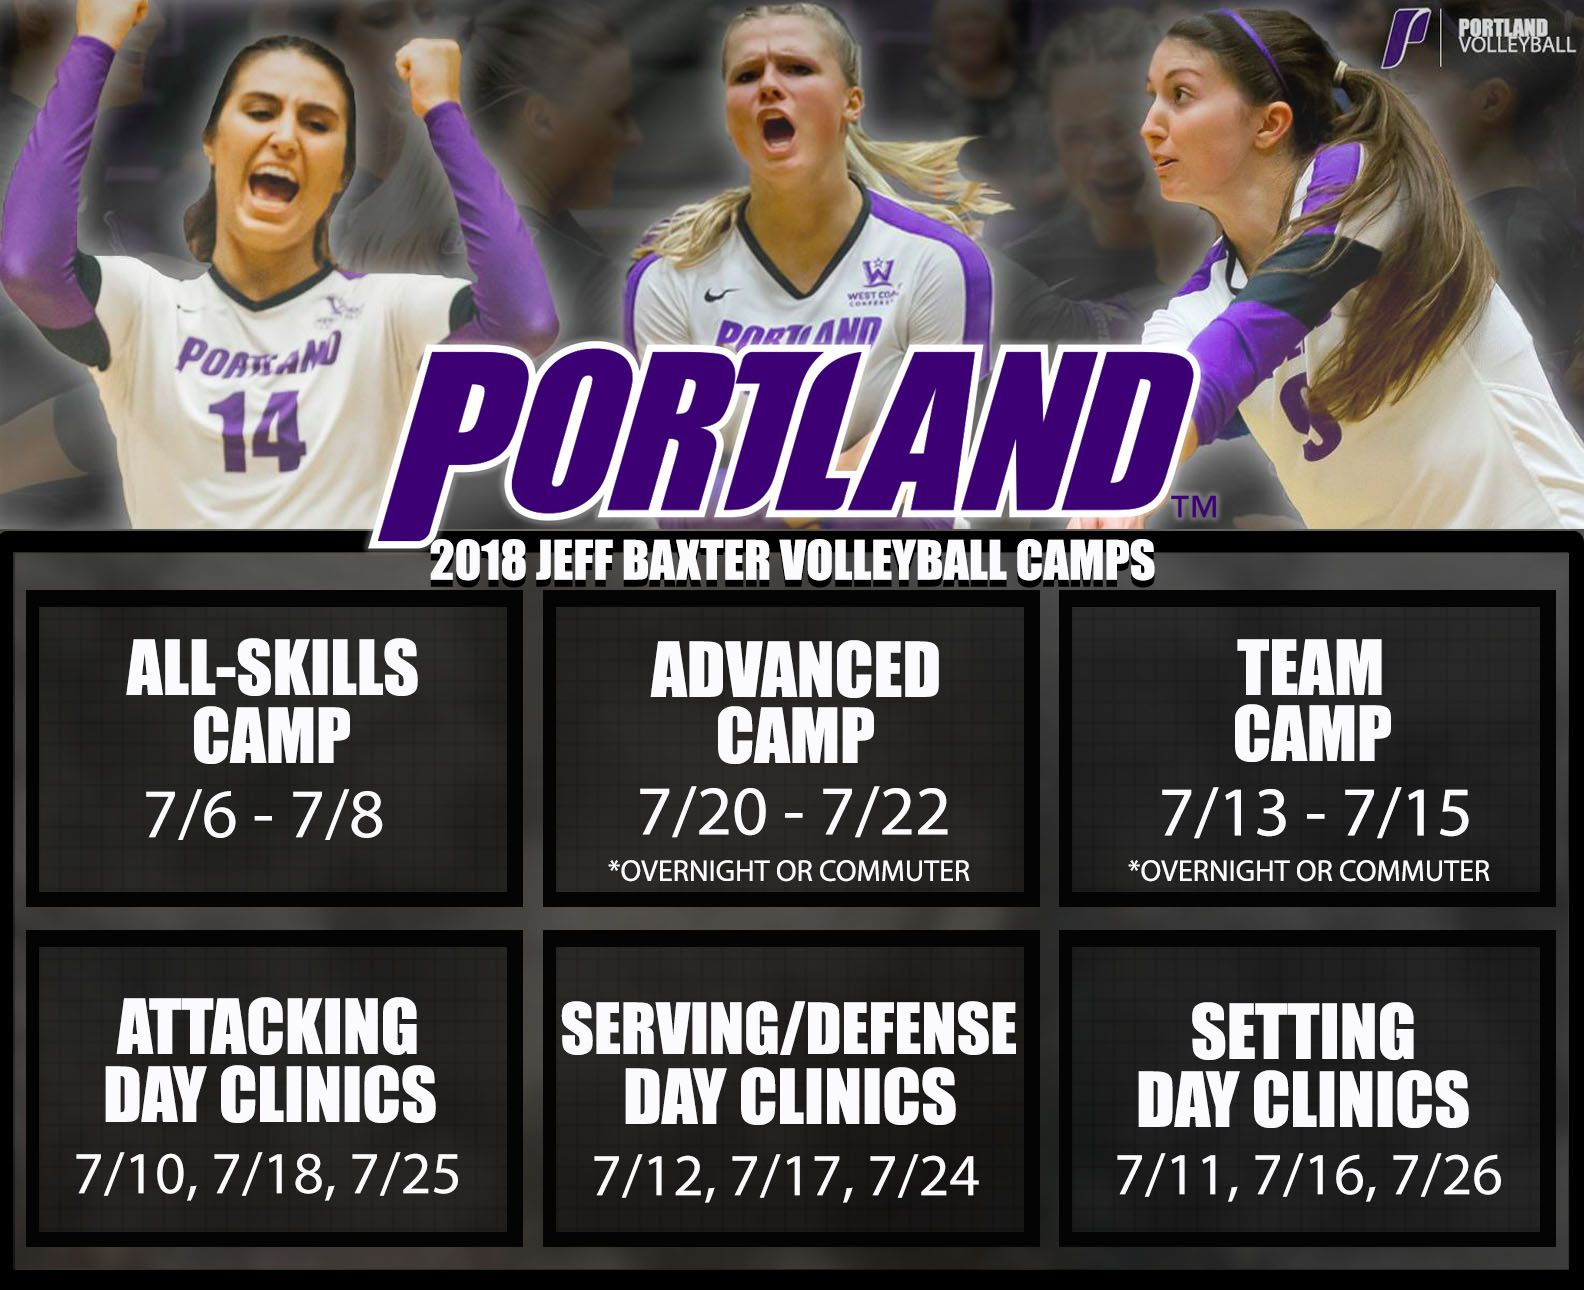 University Of Portland 2018 Volleyball Camps Volleyball Camp Volleyball Camping